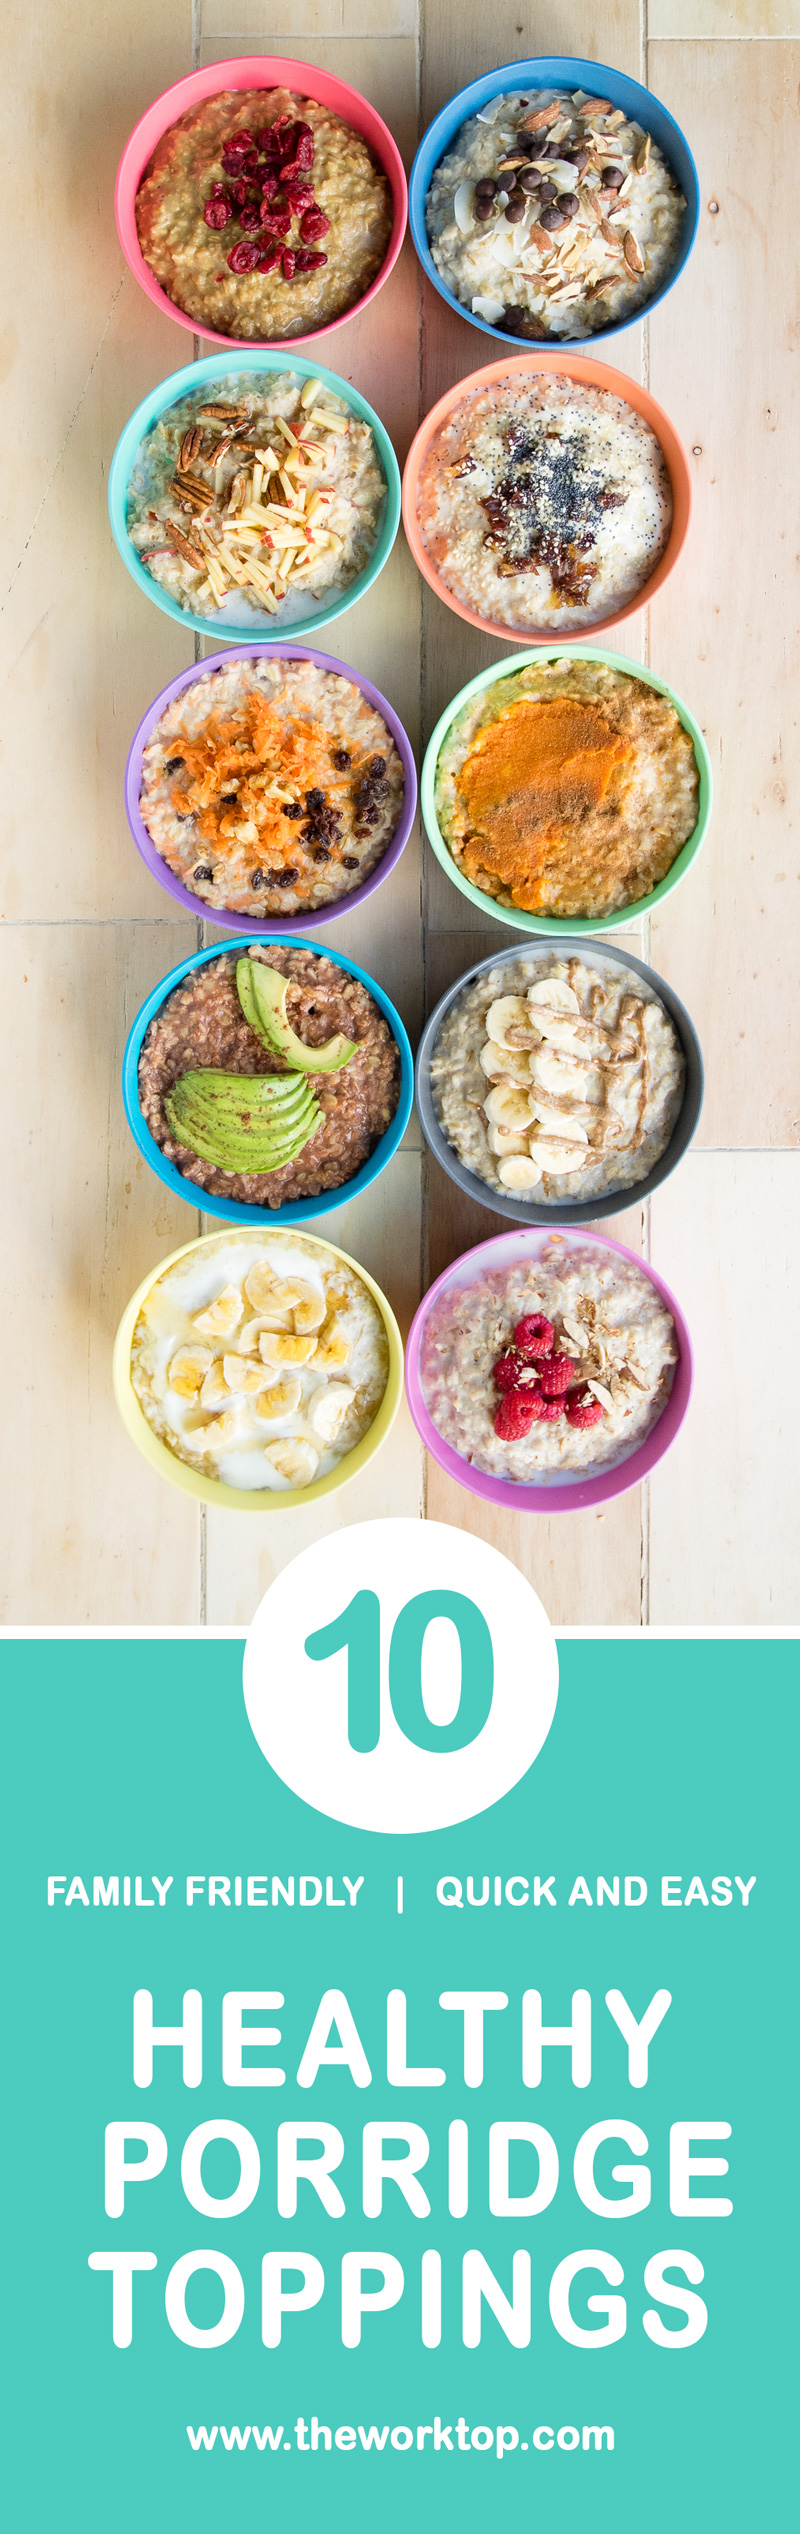 Pinterest Healthy Porridge Toppings